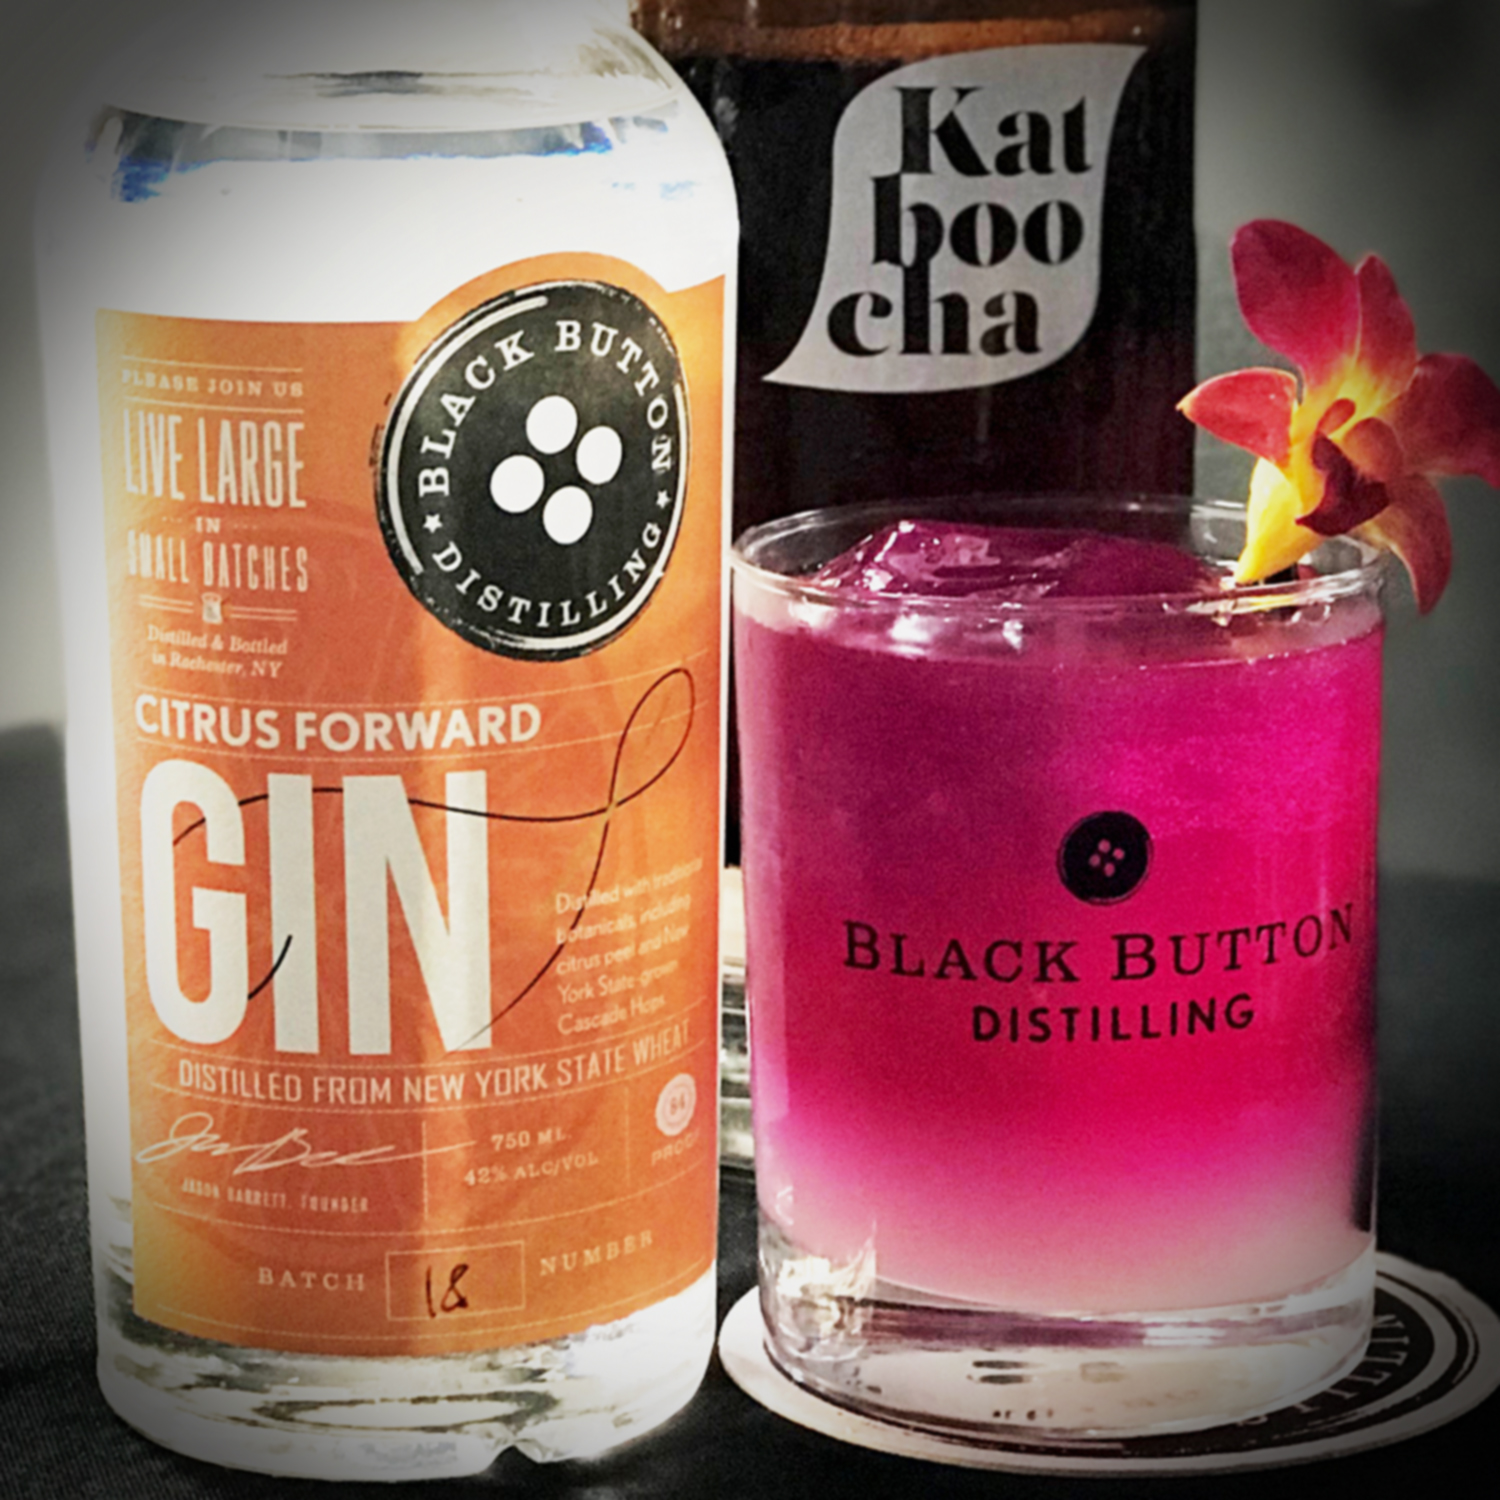 Black Button Distilling's Citrus Forward Gin and cocktail